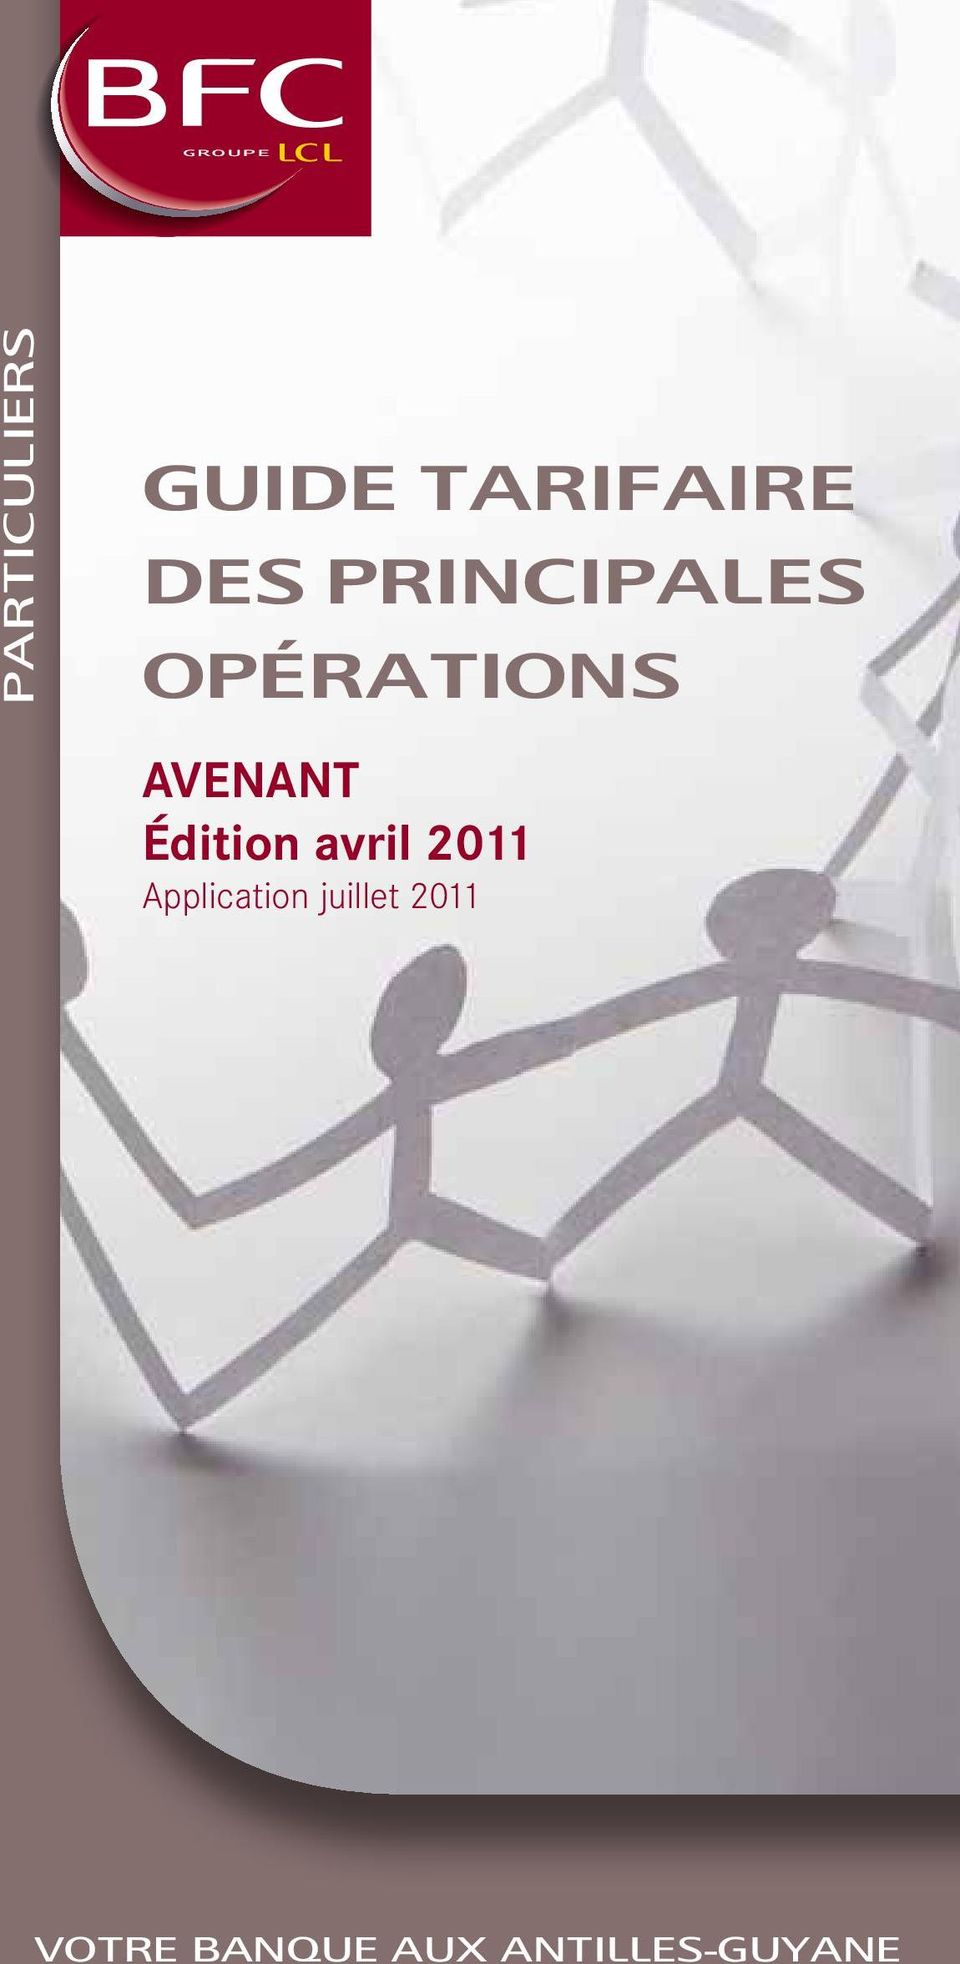 Édition avril 2011 Application